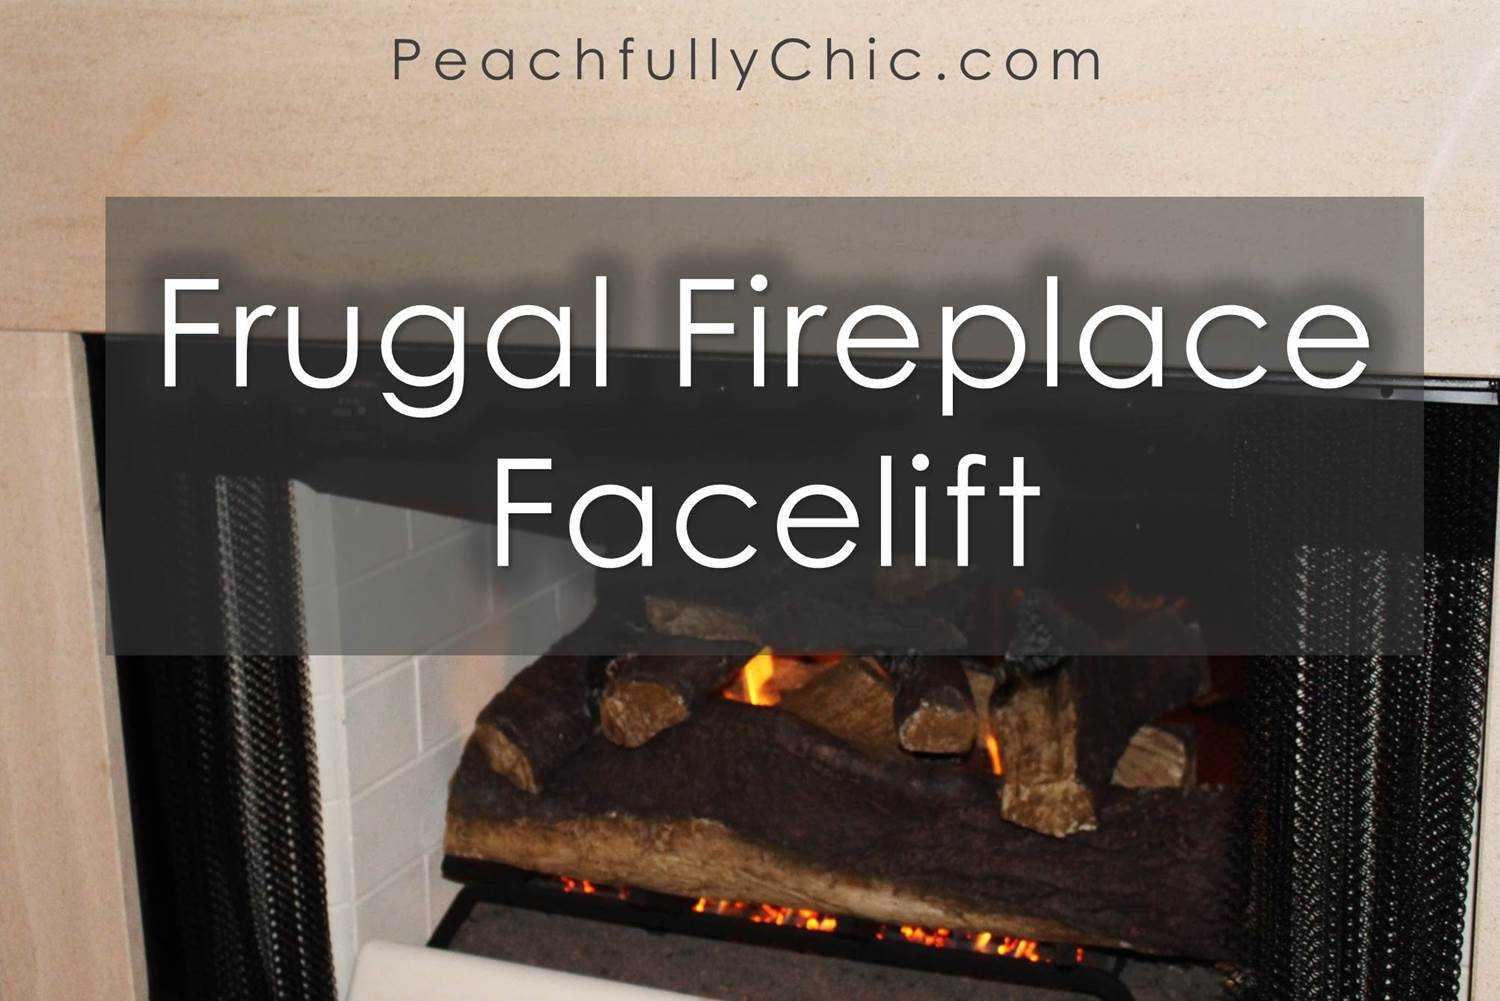 Frugal-Fireplace-Facelift-Makeover-before-after-peachfully-chic-4